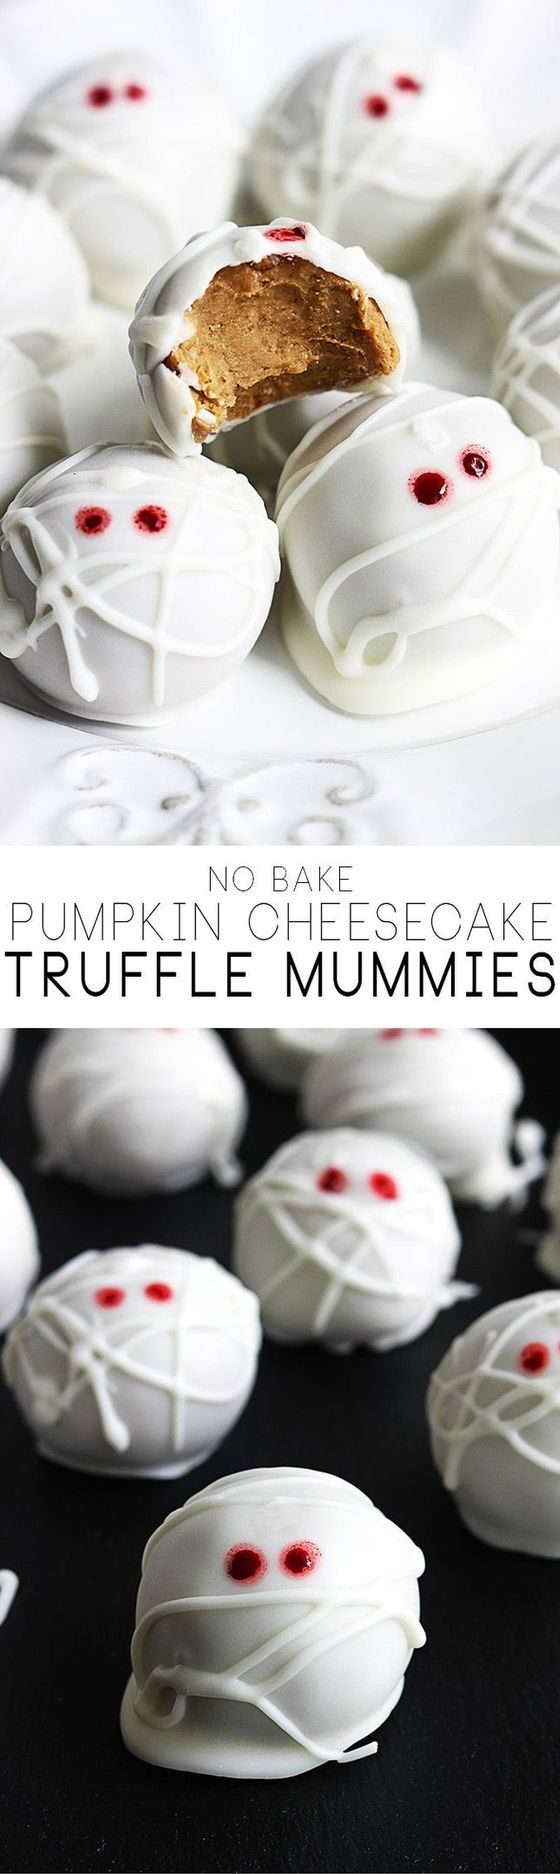 Truffle Cheesecake Mummies Halloween Dessert Tutorial